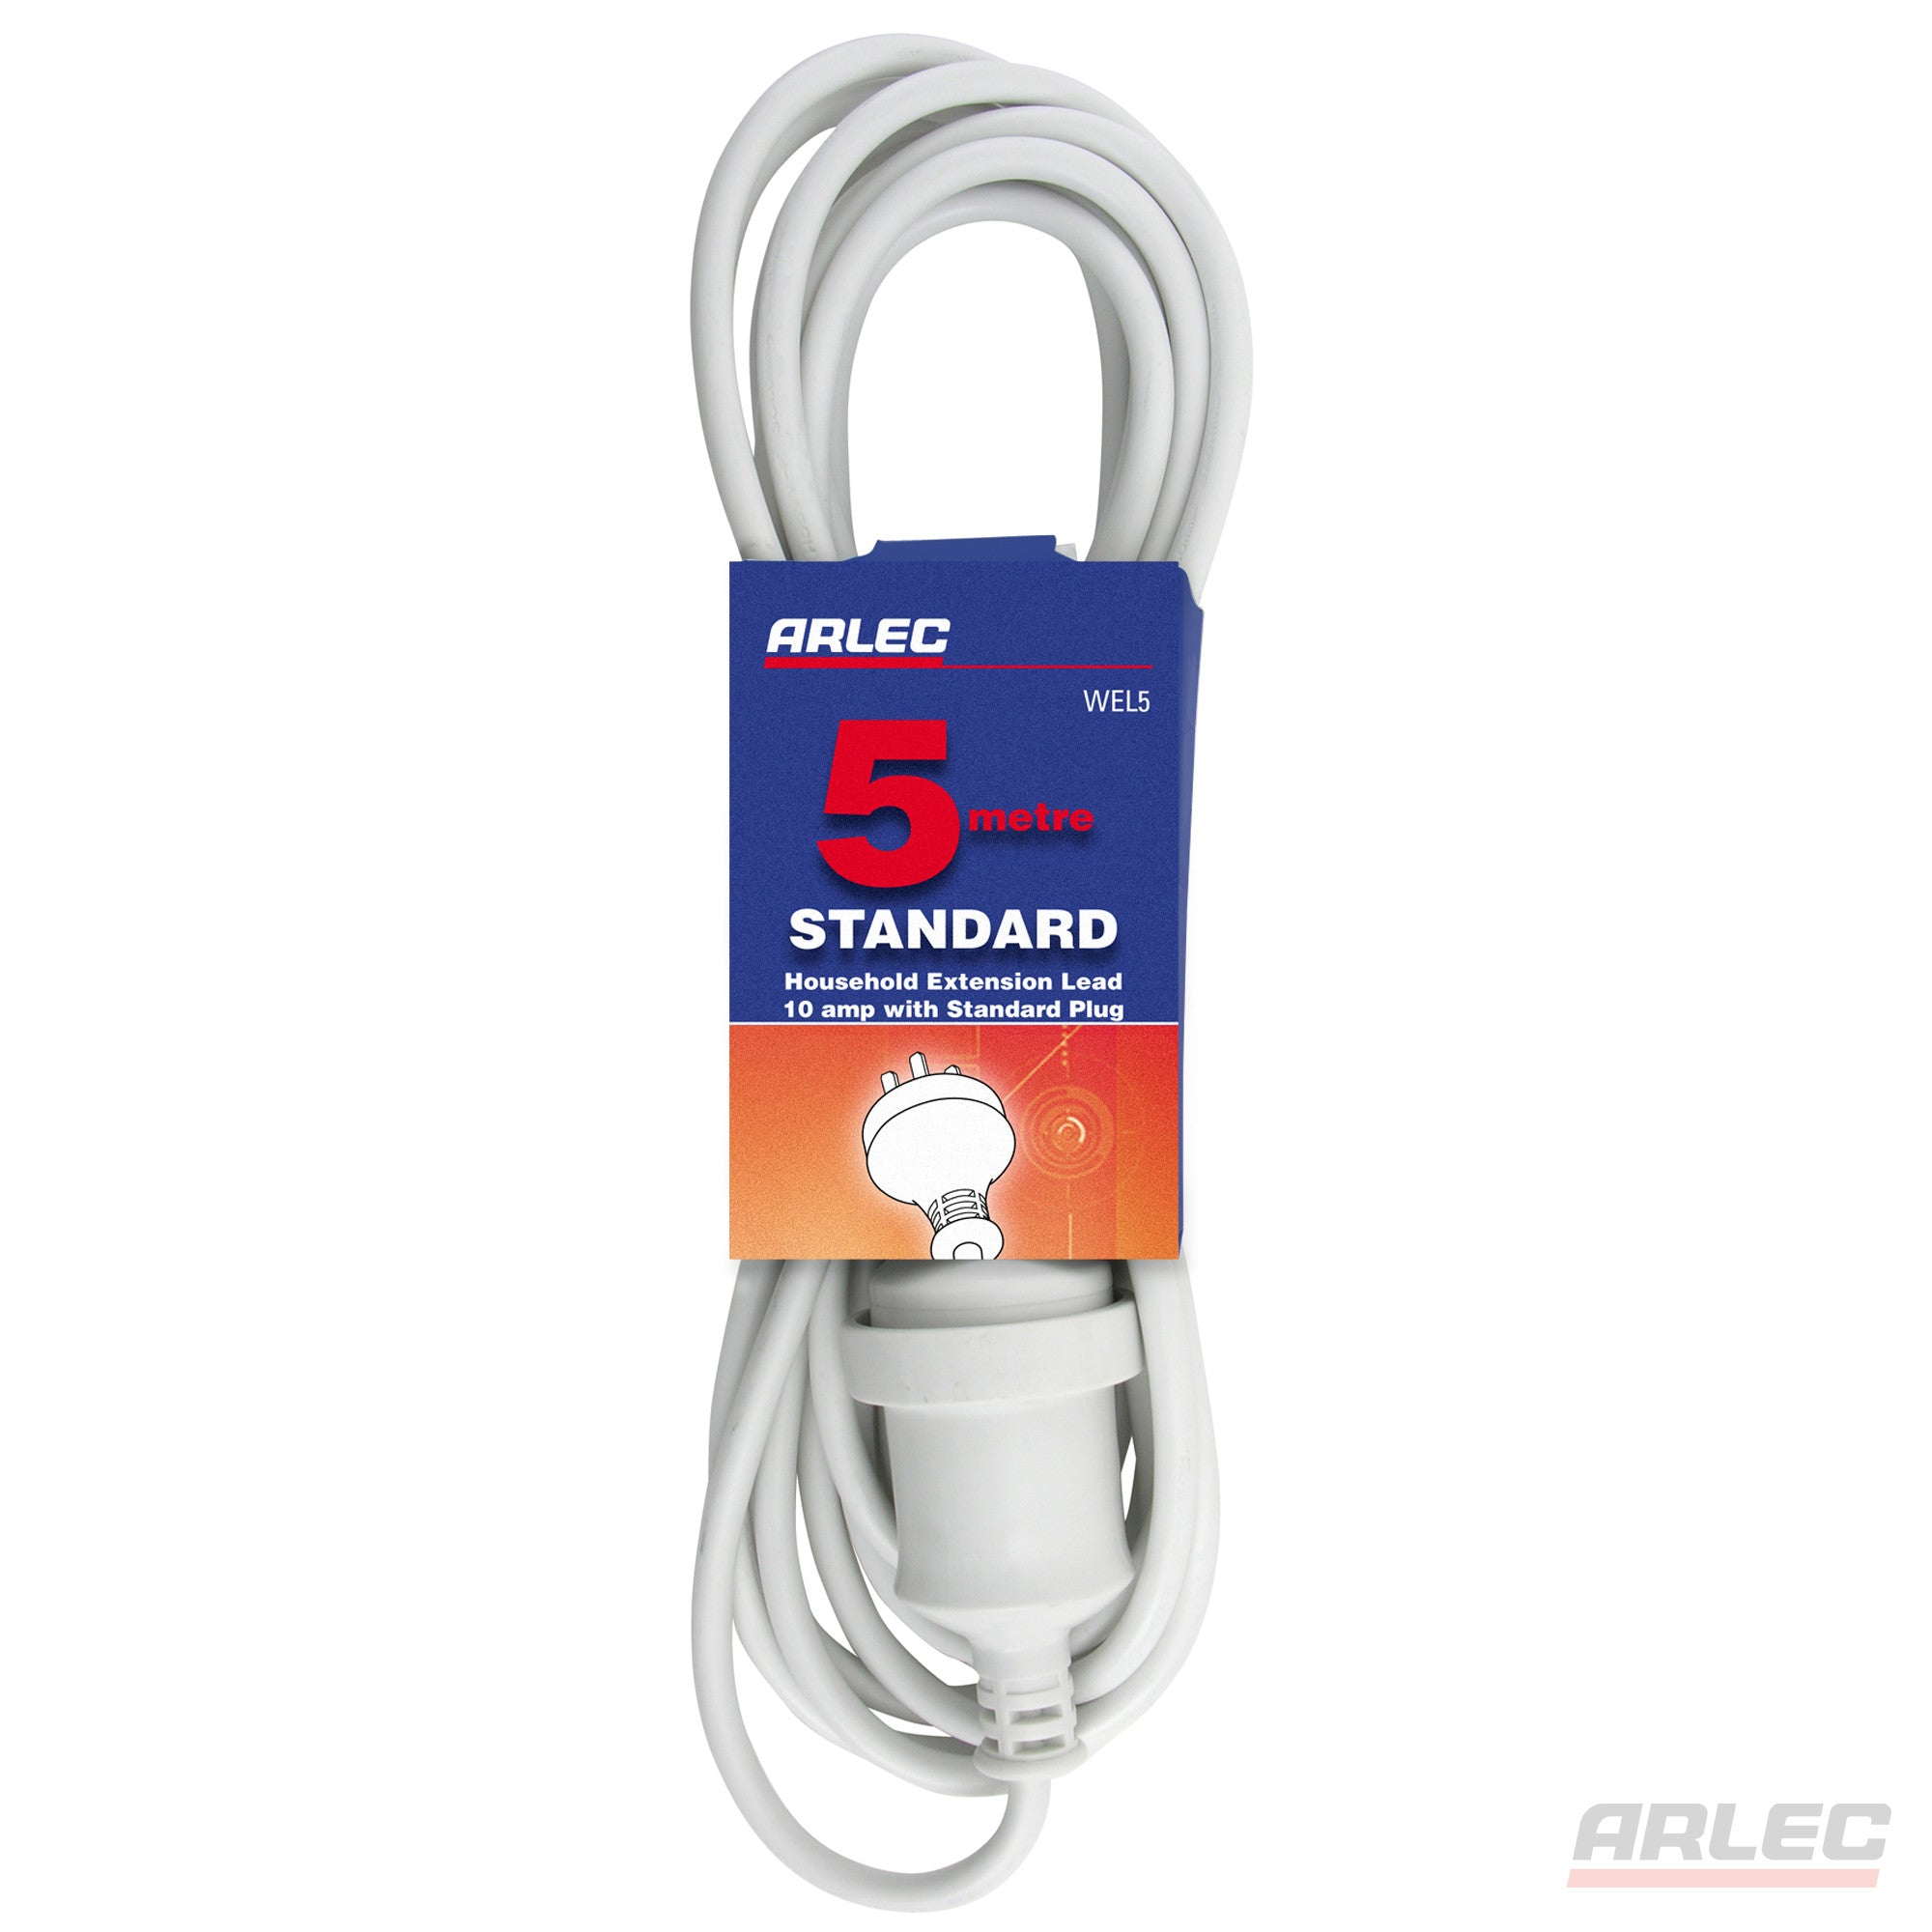 Arlec ARLEC 5 Meter Domestic Extension Lead - WEL5 - BNR Industrial